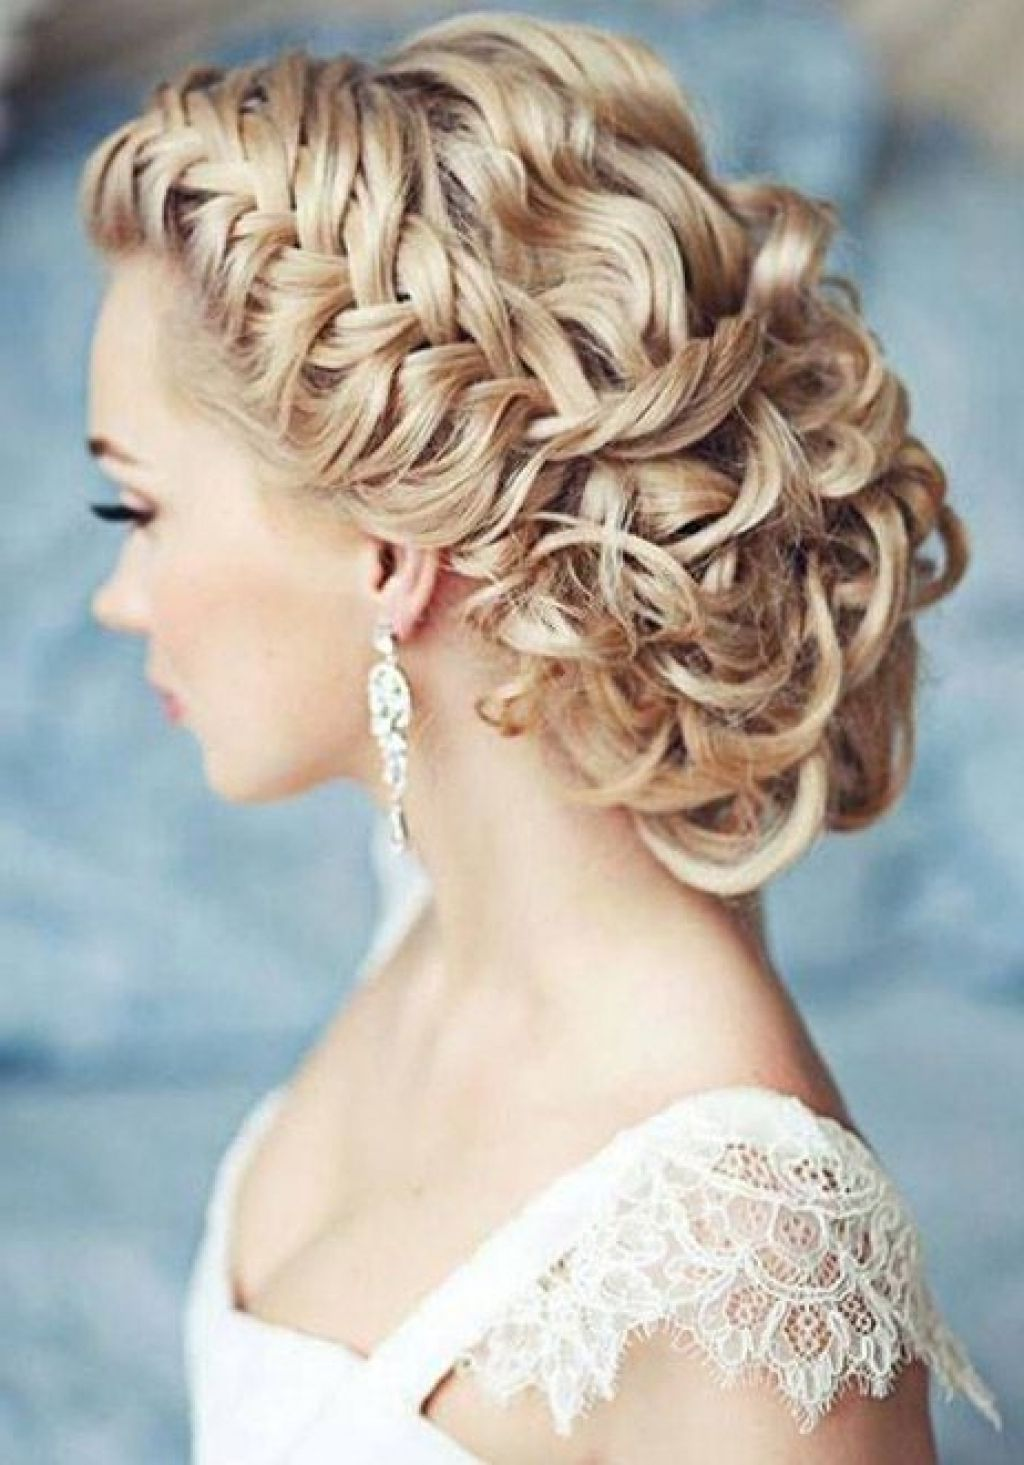 Wedding bridal hairstyle for long hair updo hairstyles